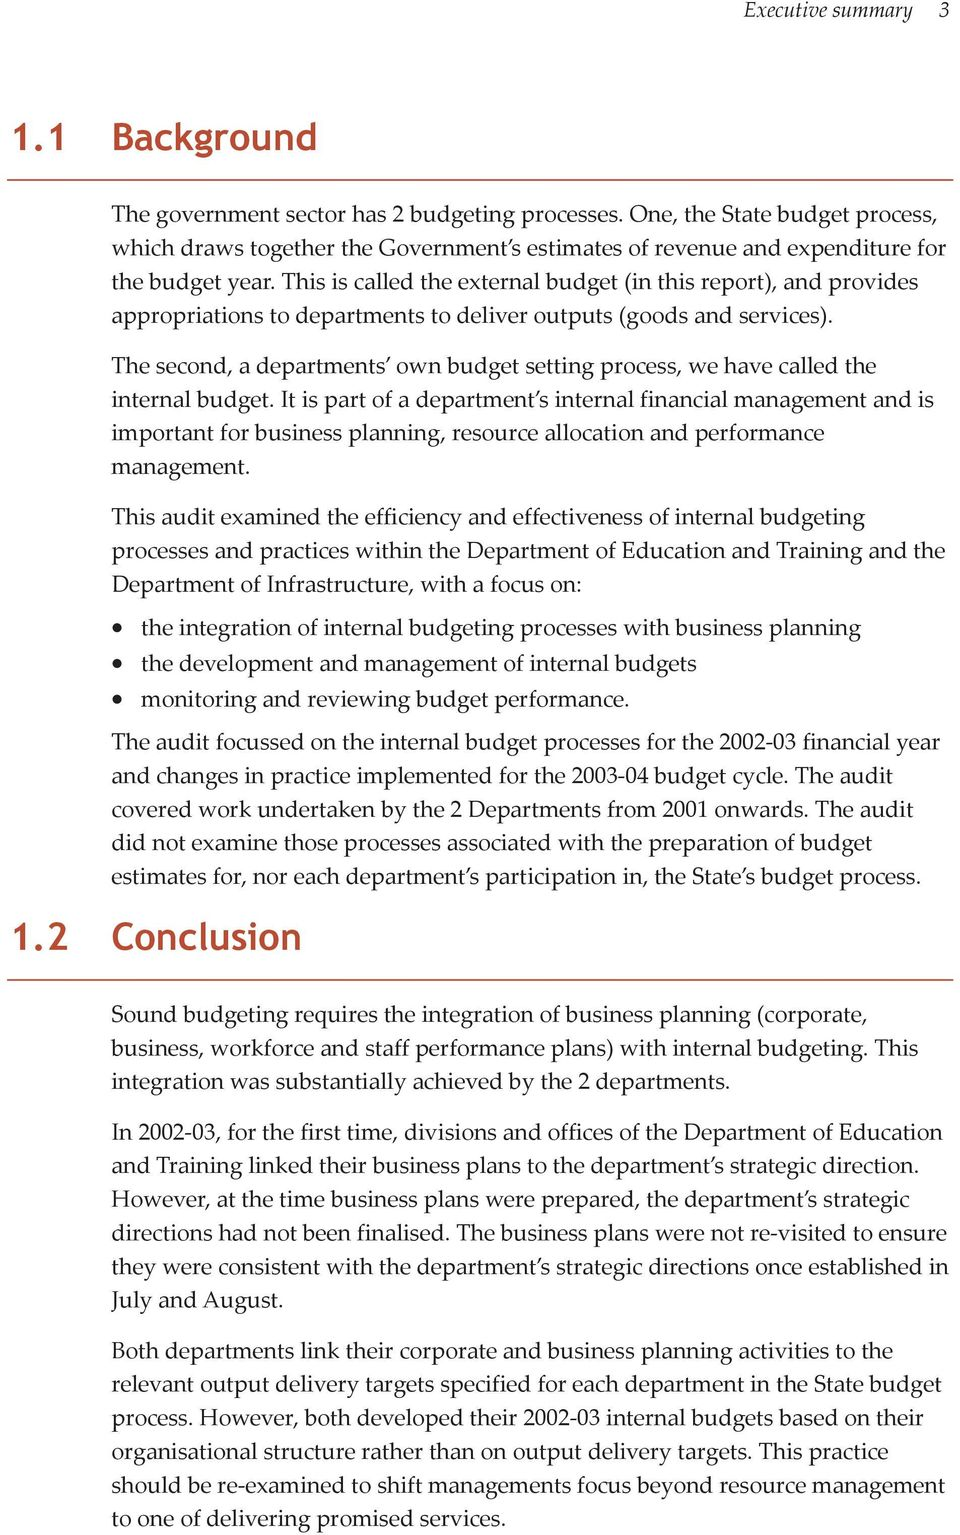 This is called the external budget (in this report), and provides appropriations to departments to deliver outputs (goods and services).